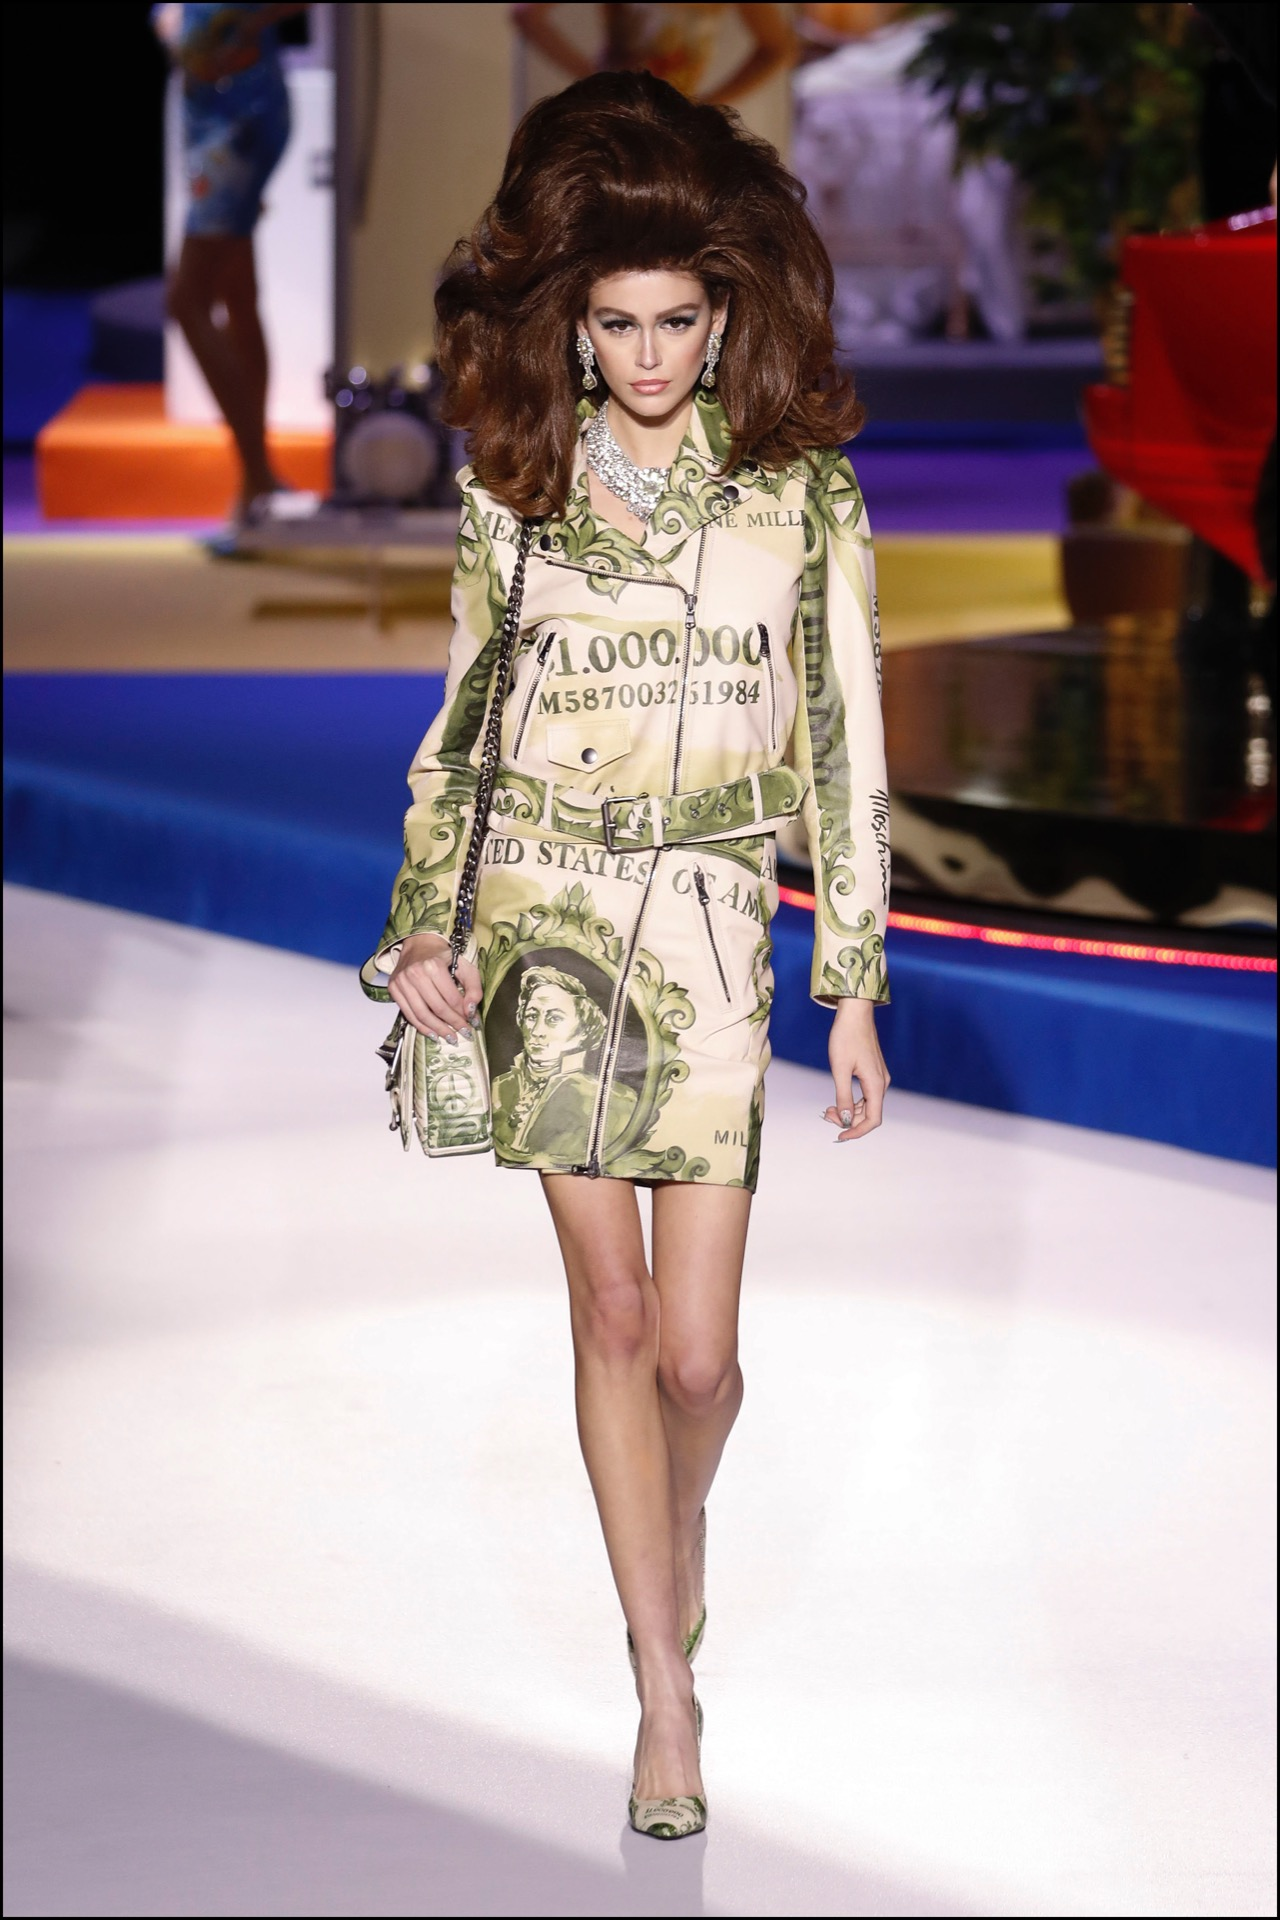 "Kaia Gerber - DÈfilÈ Moschino ""Collection PrÍt-‡-Porter Automne-Hiver 2019/2020"" lors de la Fashion Week de Milan (MLFW), le 22 fÈvrier 2019. Moschino Fashion Show ""Ready-to-Wear Fall-Winter 2019/2020"" at Milan Fashion Week, February 22nd, 2019."